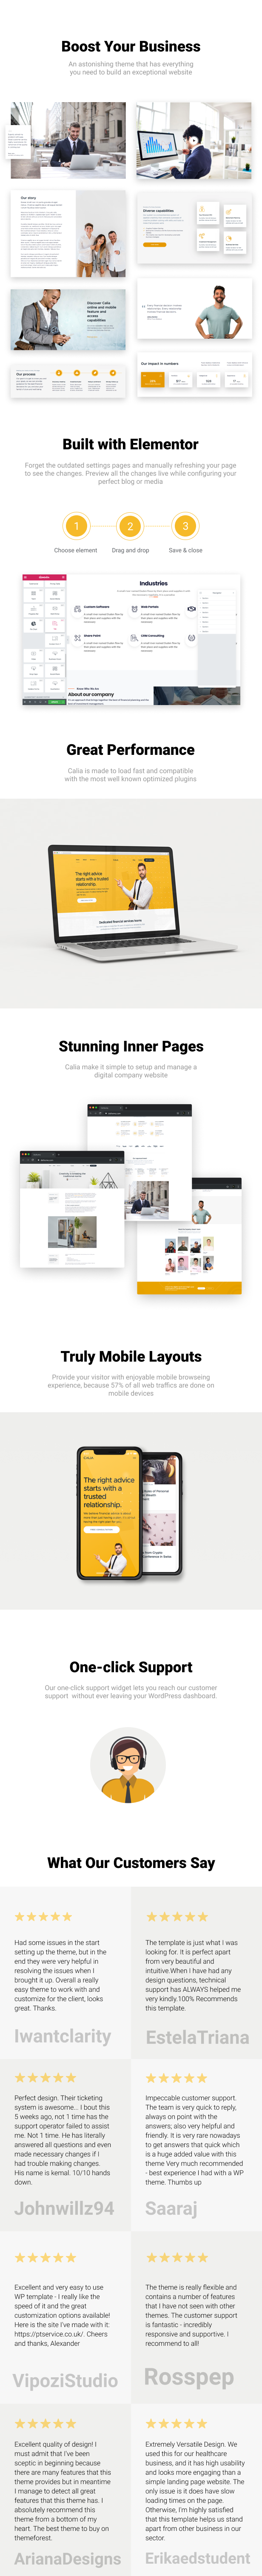 Calia - Business and Management WordPress Theme - 1